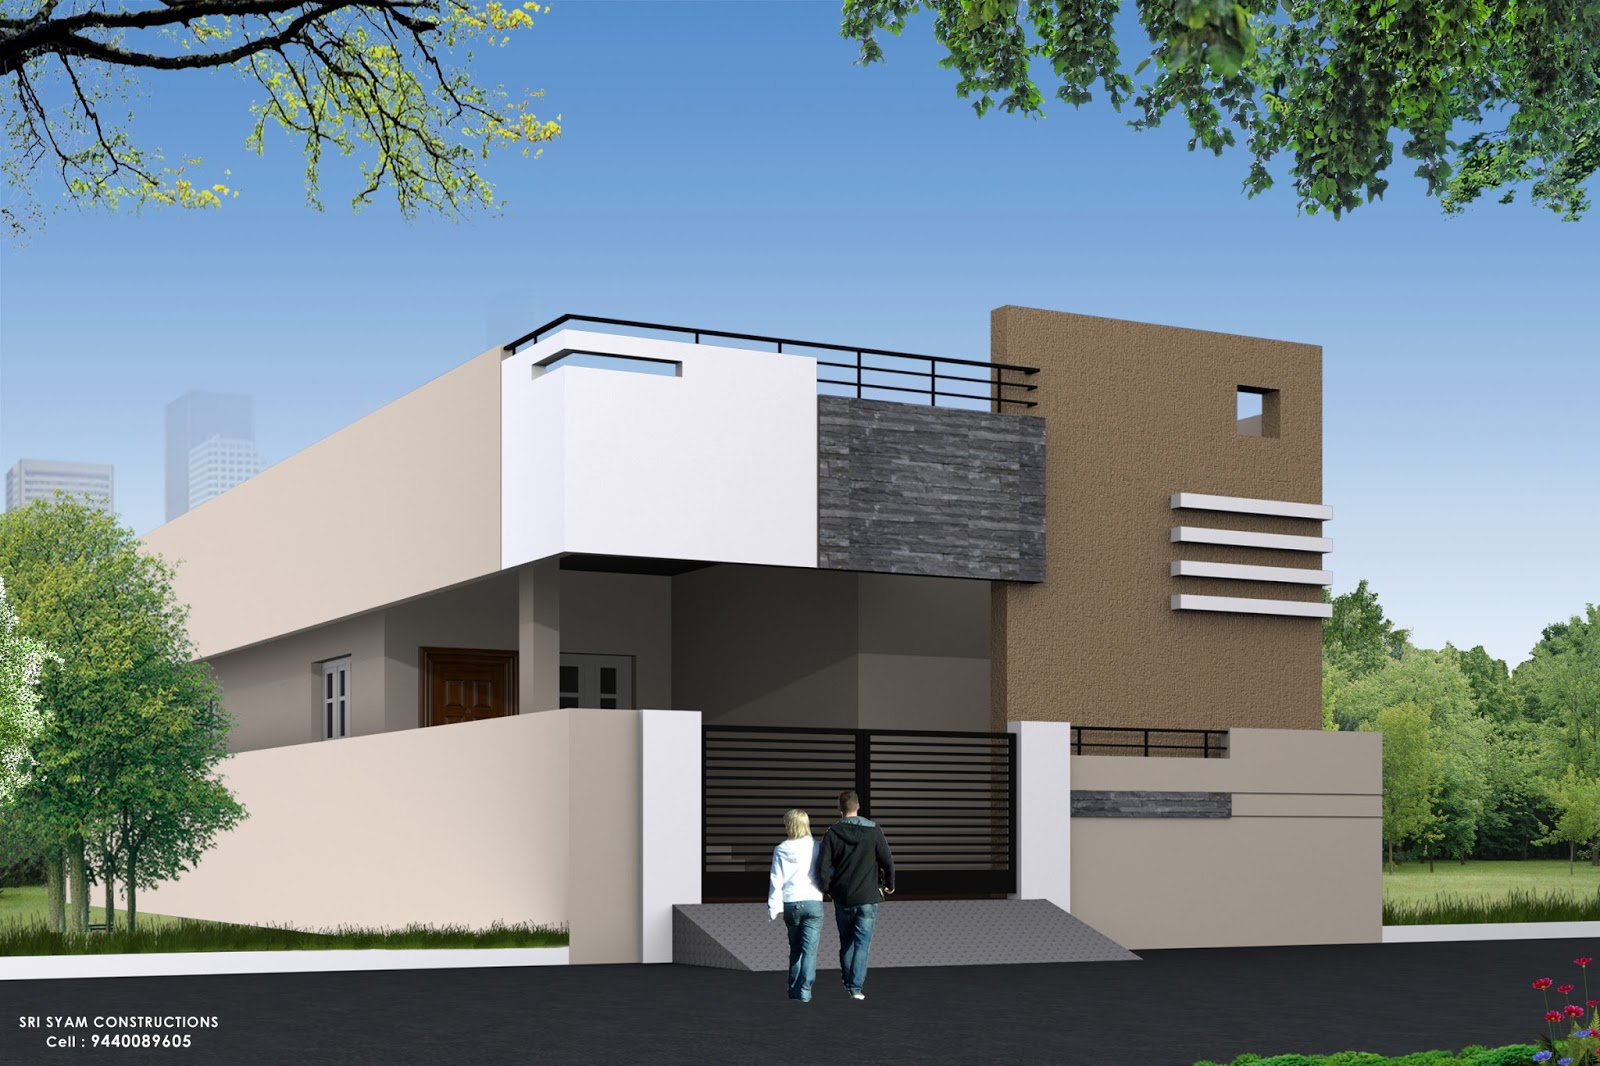 Building Elevation Design Part - 40: This Elevations Are Completed In Site .same As Image We Are Doing So Many  Projects All Type Of Civil Engineering Services. And Interiors.if You Any  One Have ...